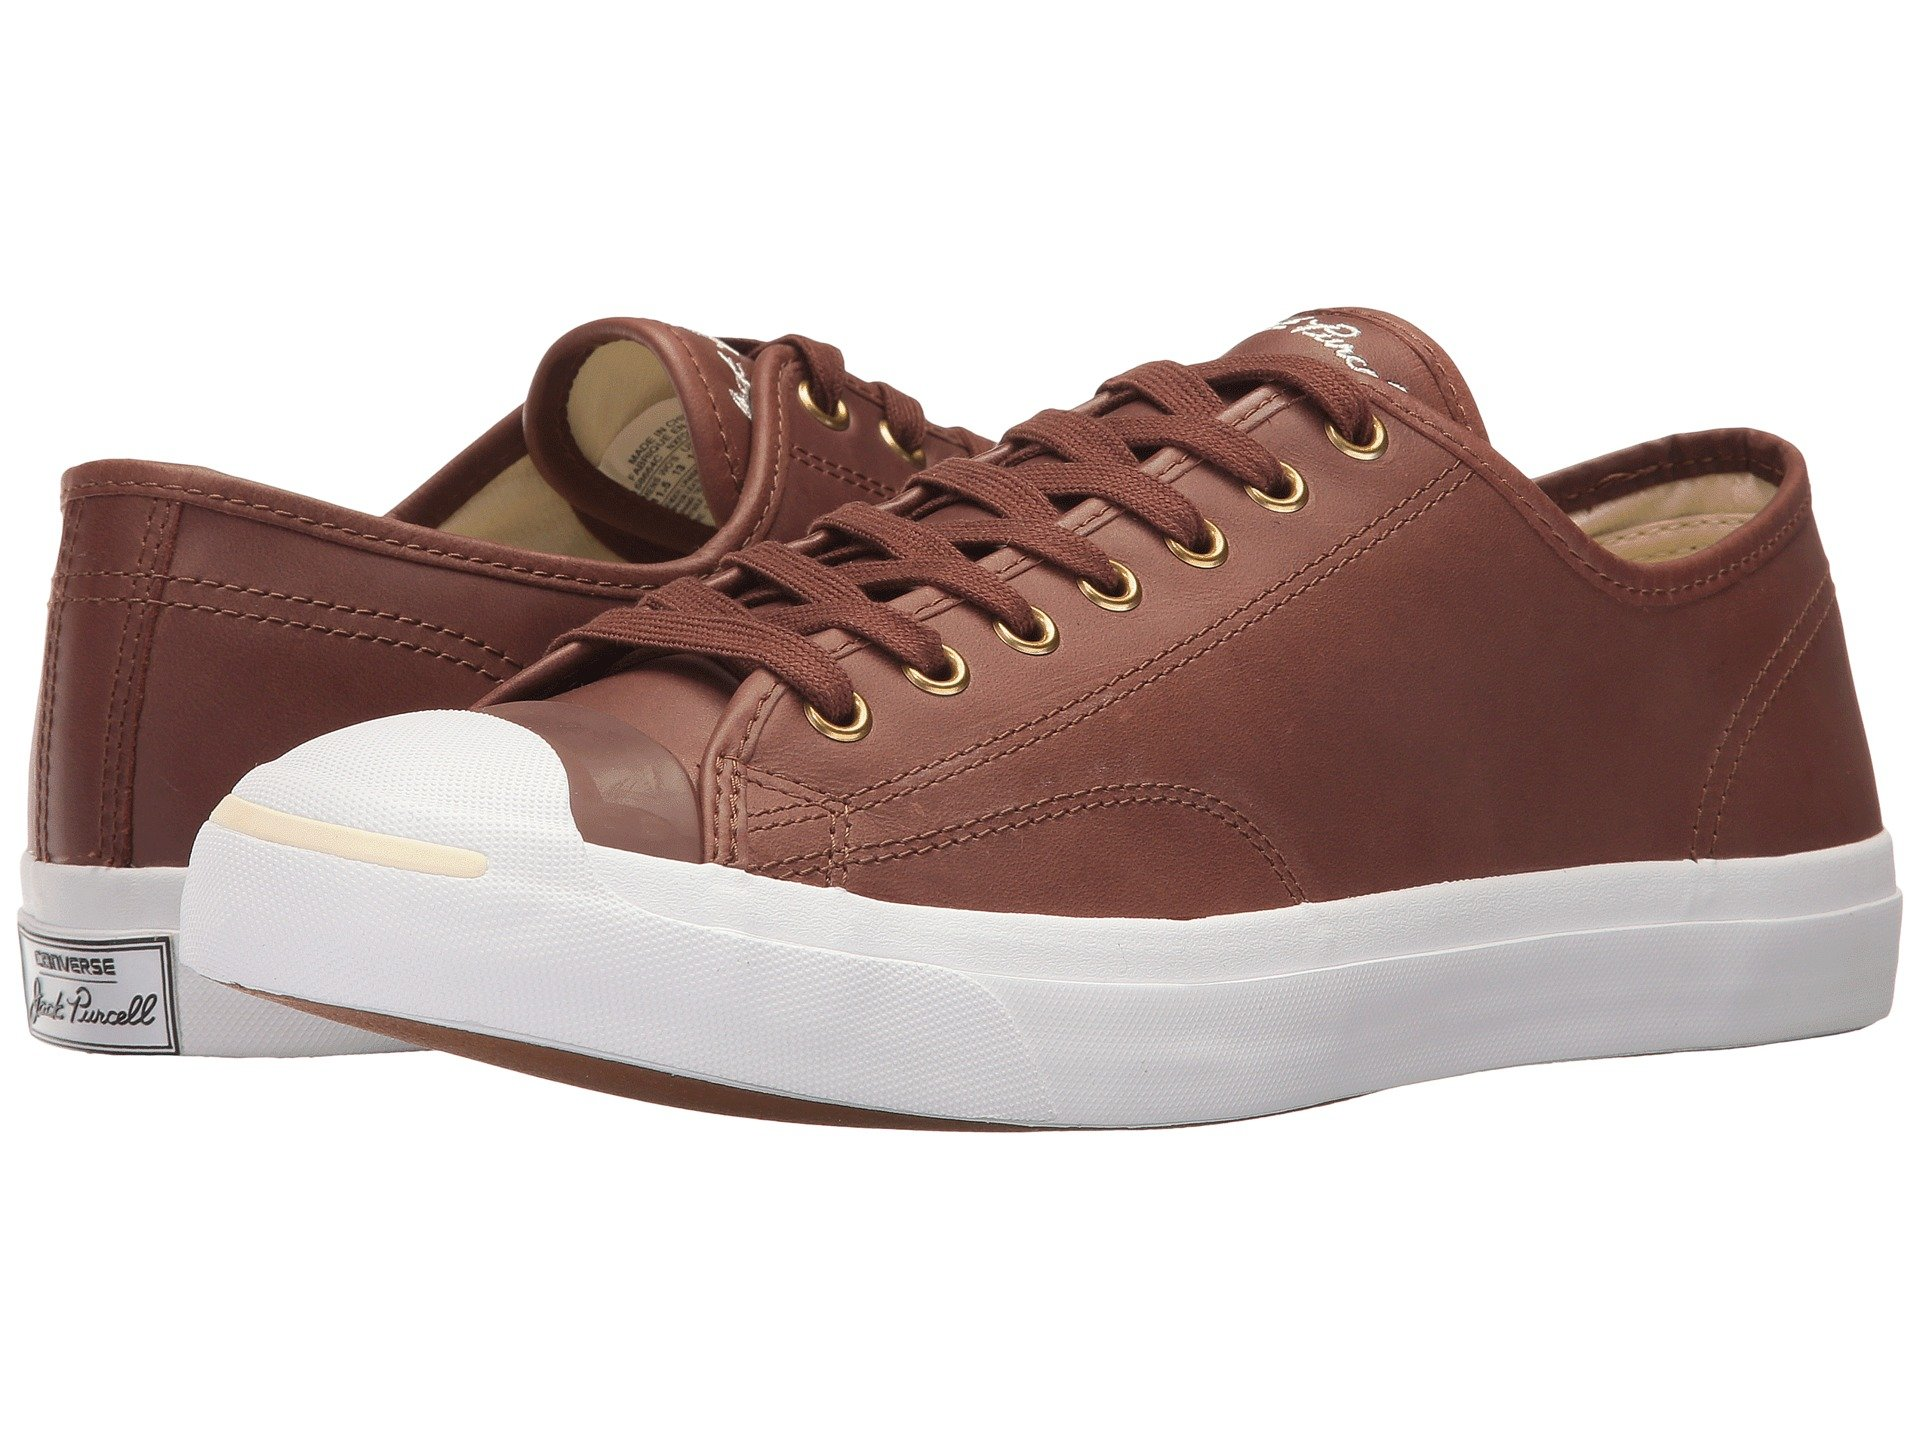 JACK PURCELL - OX